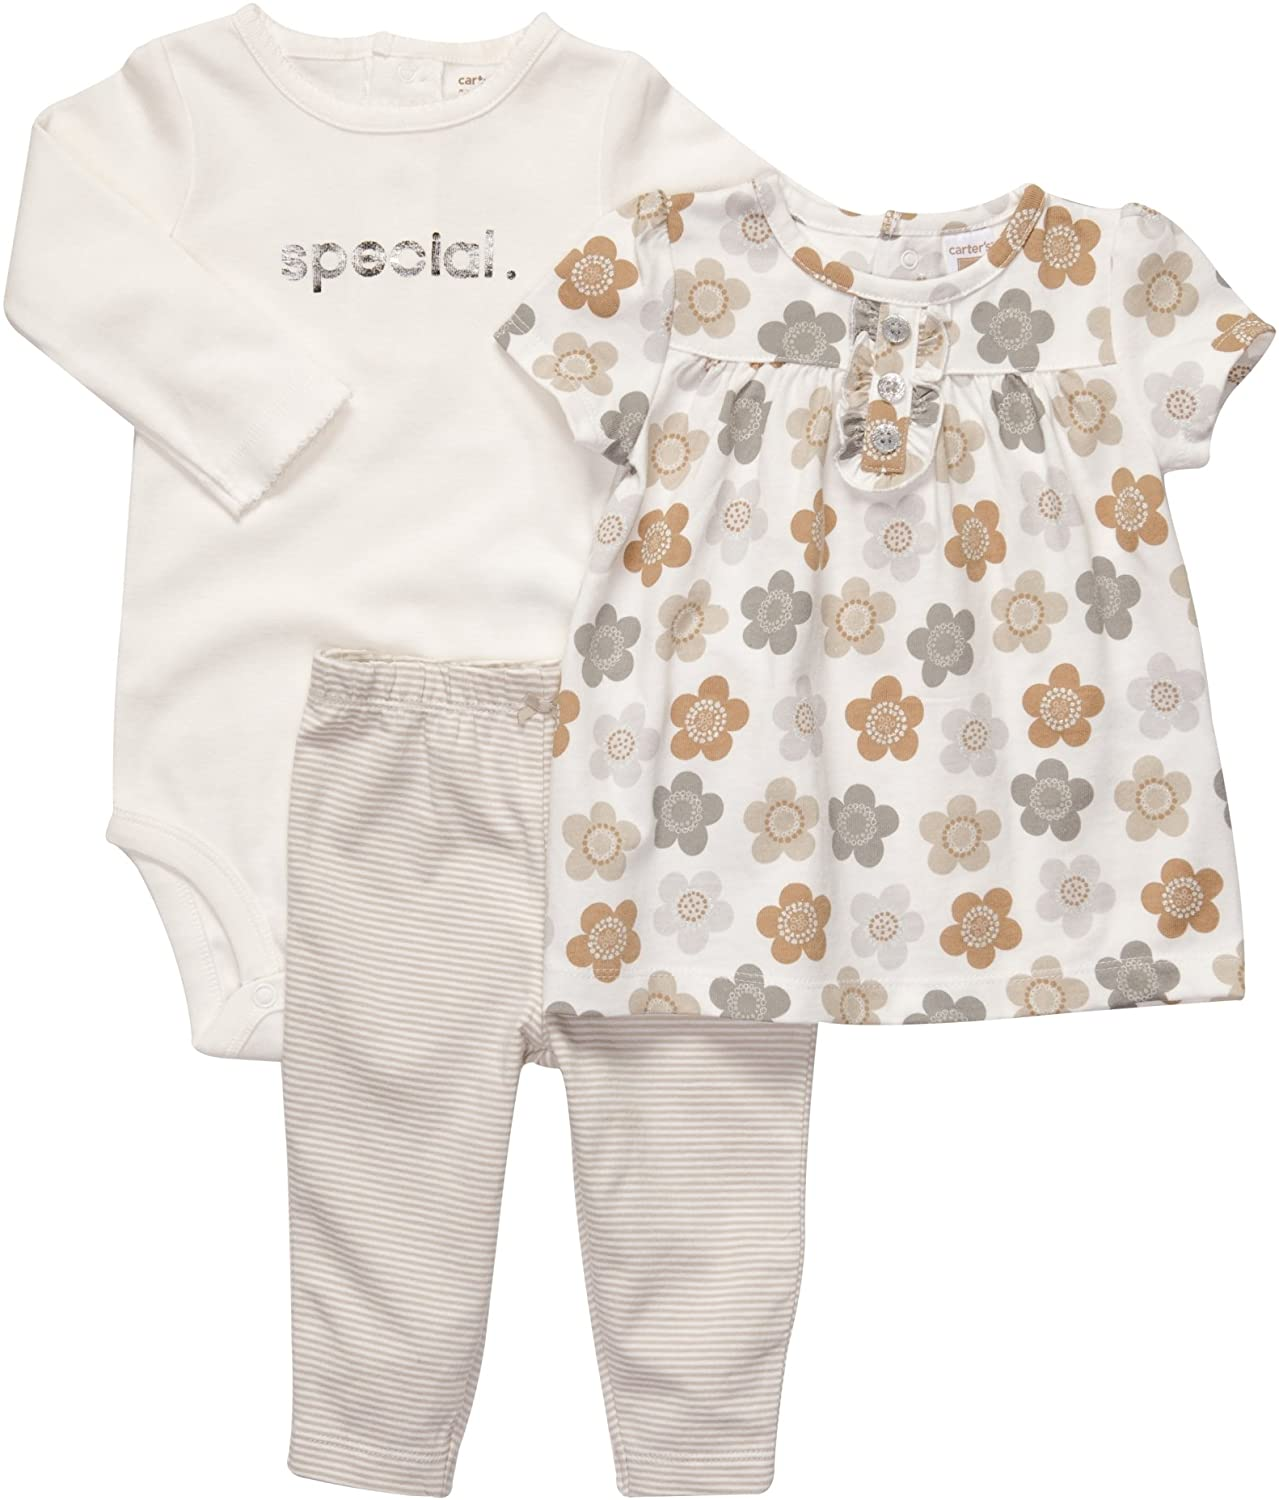 Carter's Baby Girls' 3 Pc Bodysuit and Tunic Set